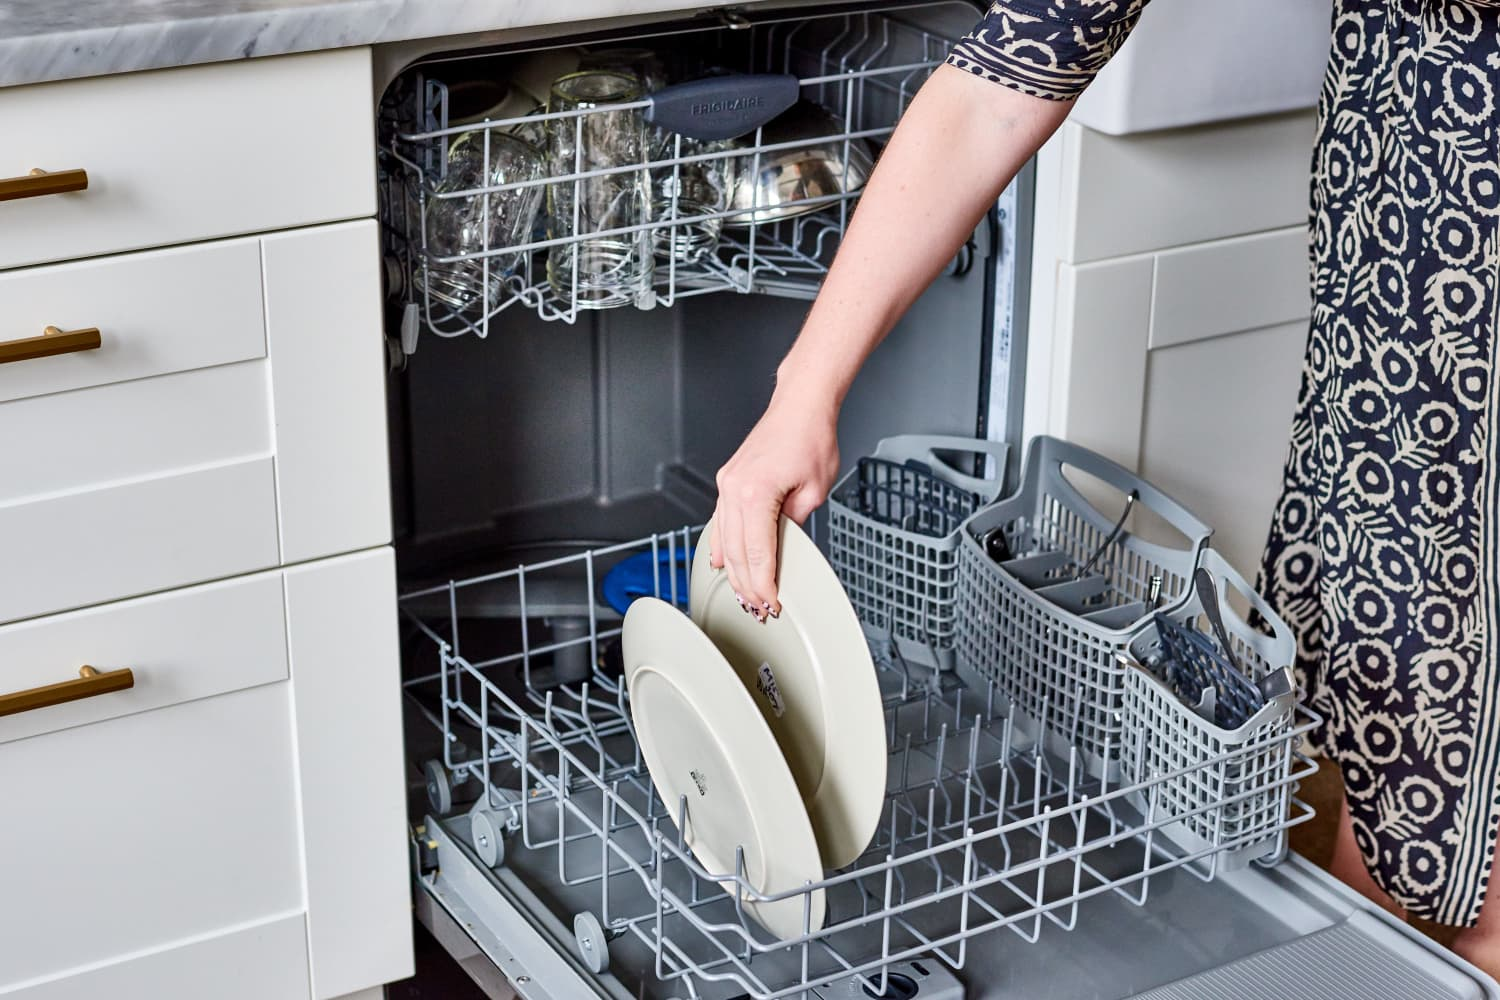 The One Thing Everyone Should Do Before Running the Dishwasher